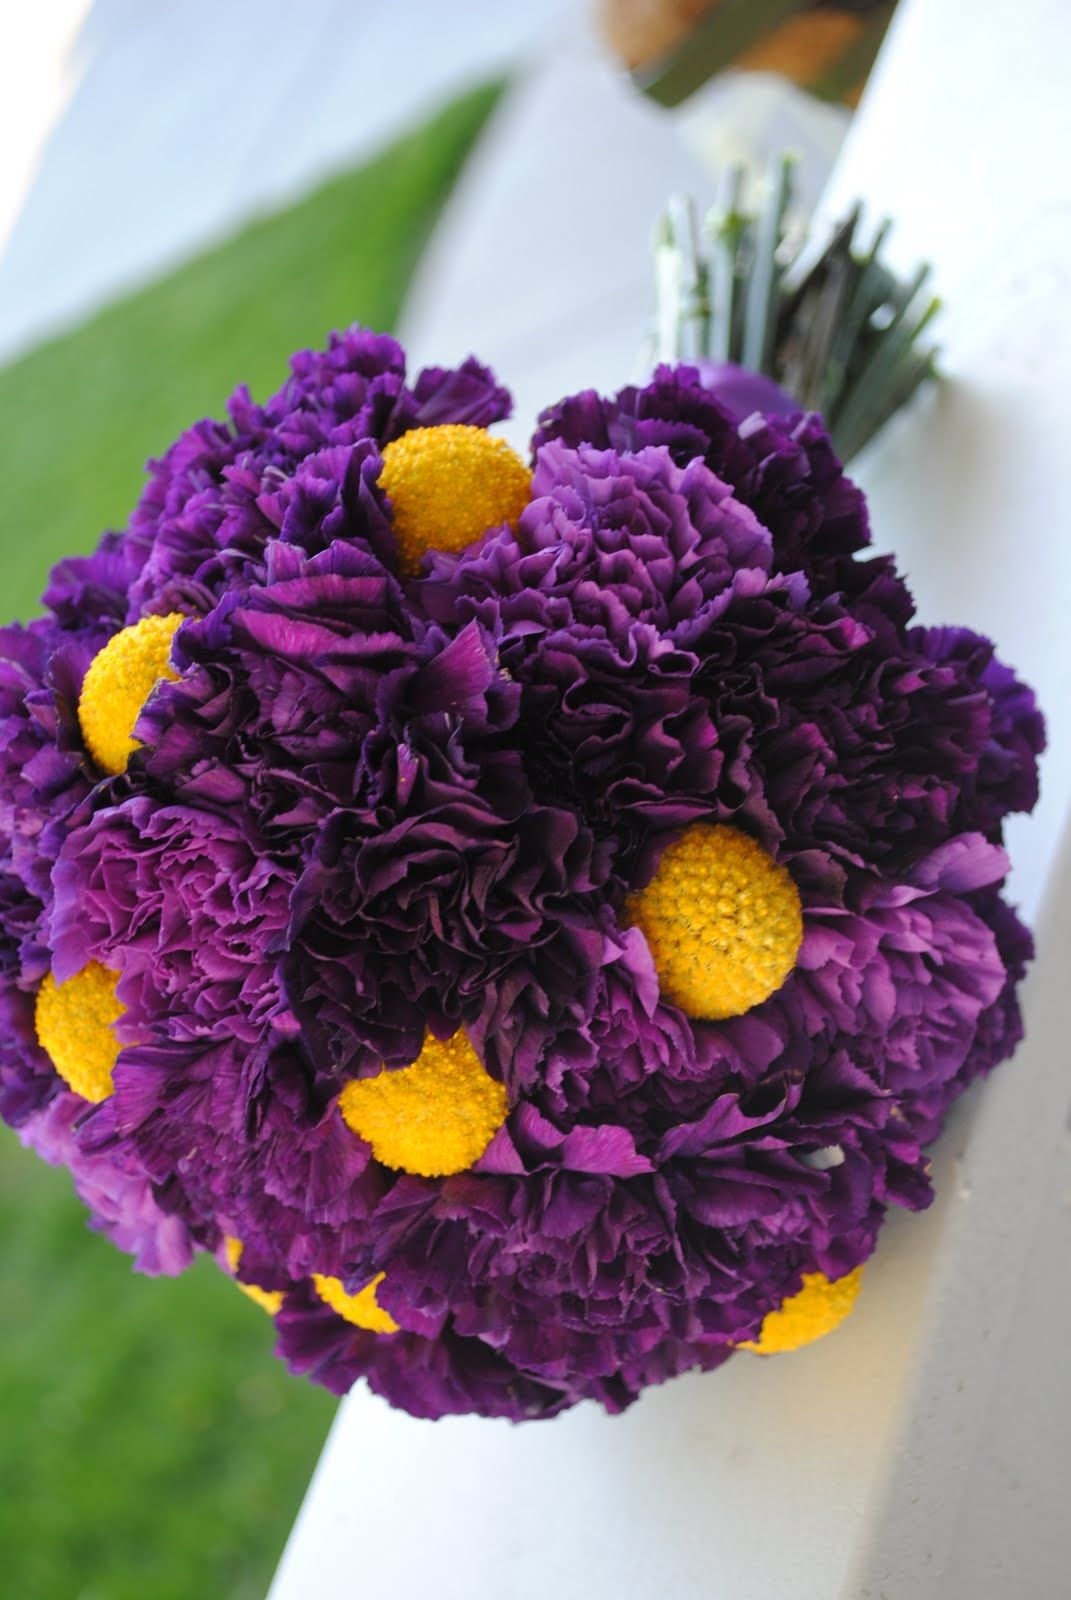 So cute you can get the little billy buttons yellow balls from a so cute you can get the little billy buttons yellow balls from a dried flower shop and purple carnations are inexpensive mightylinksfo